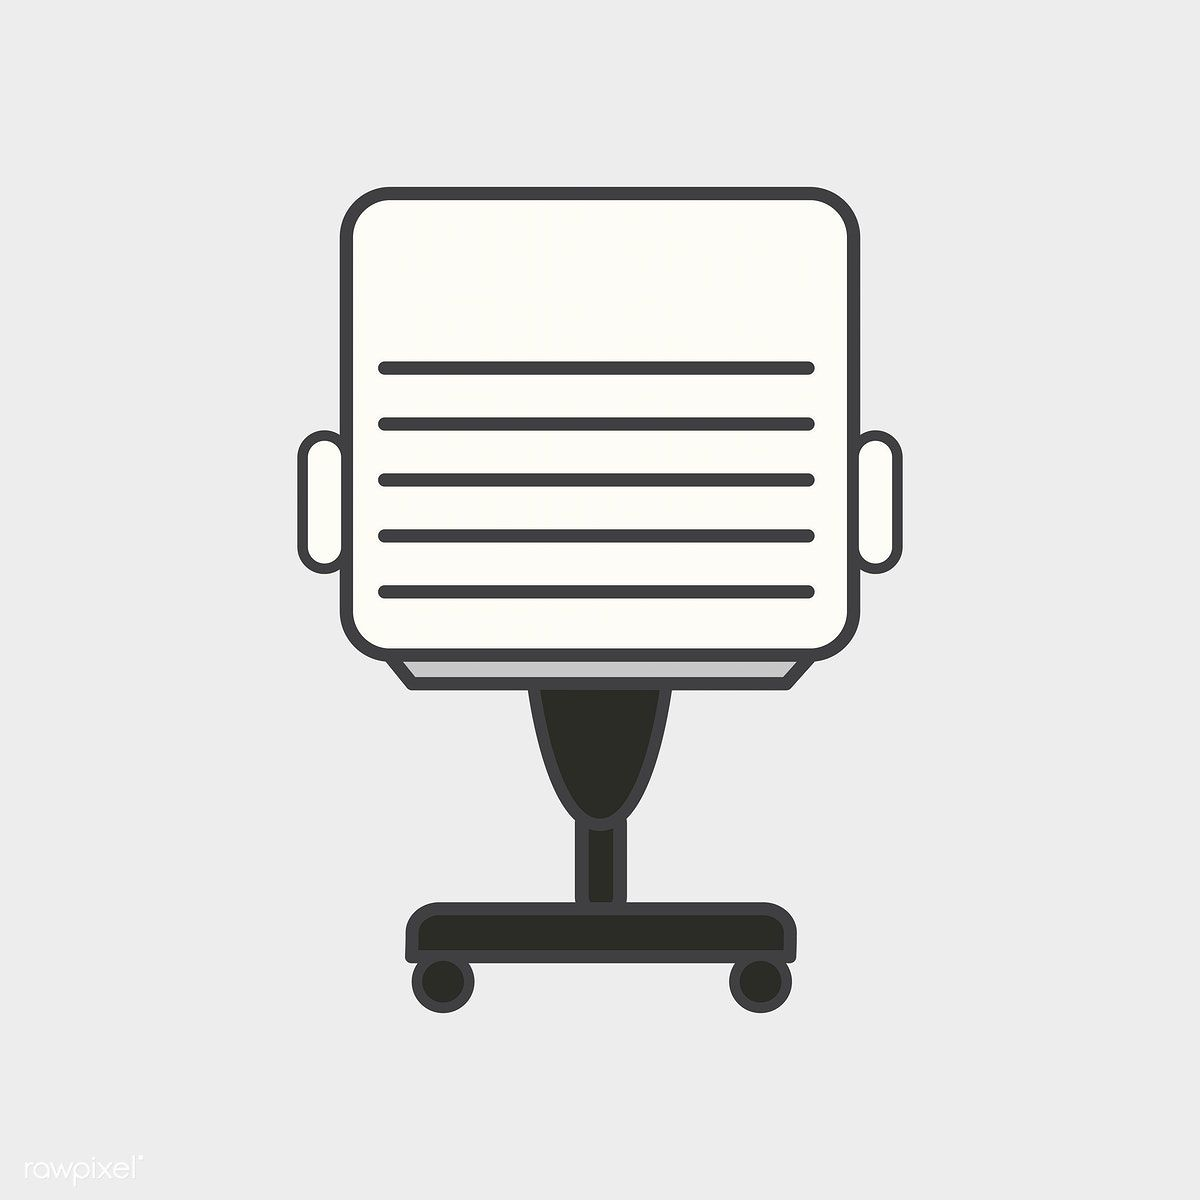 illustration of office chair icon free image by rawpixel com rh pinterest com Blueprint Icon Chair Icon Office Chair No Backgroujd